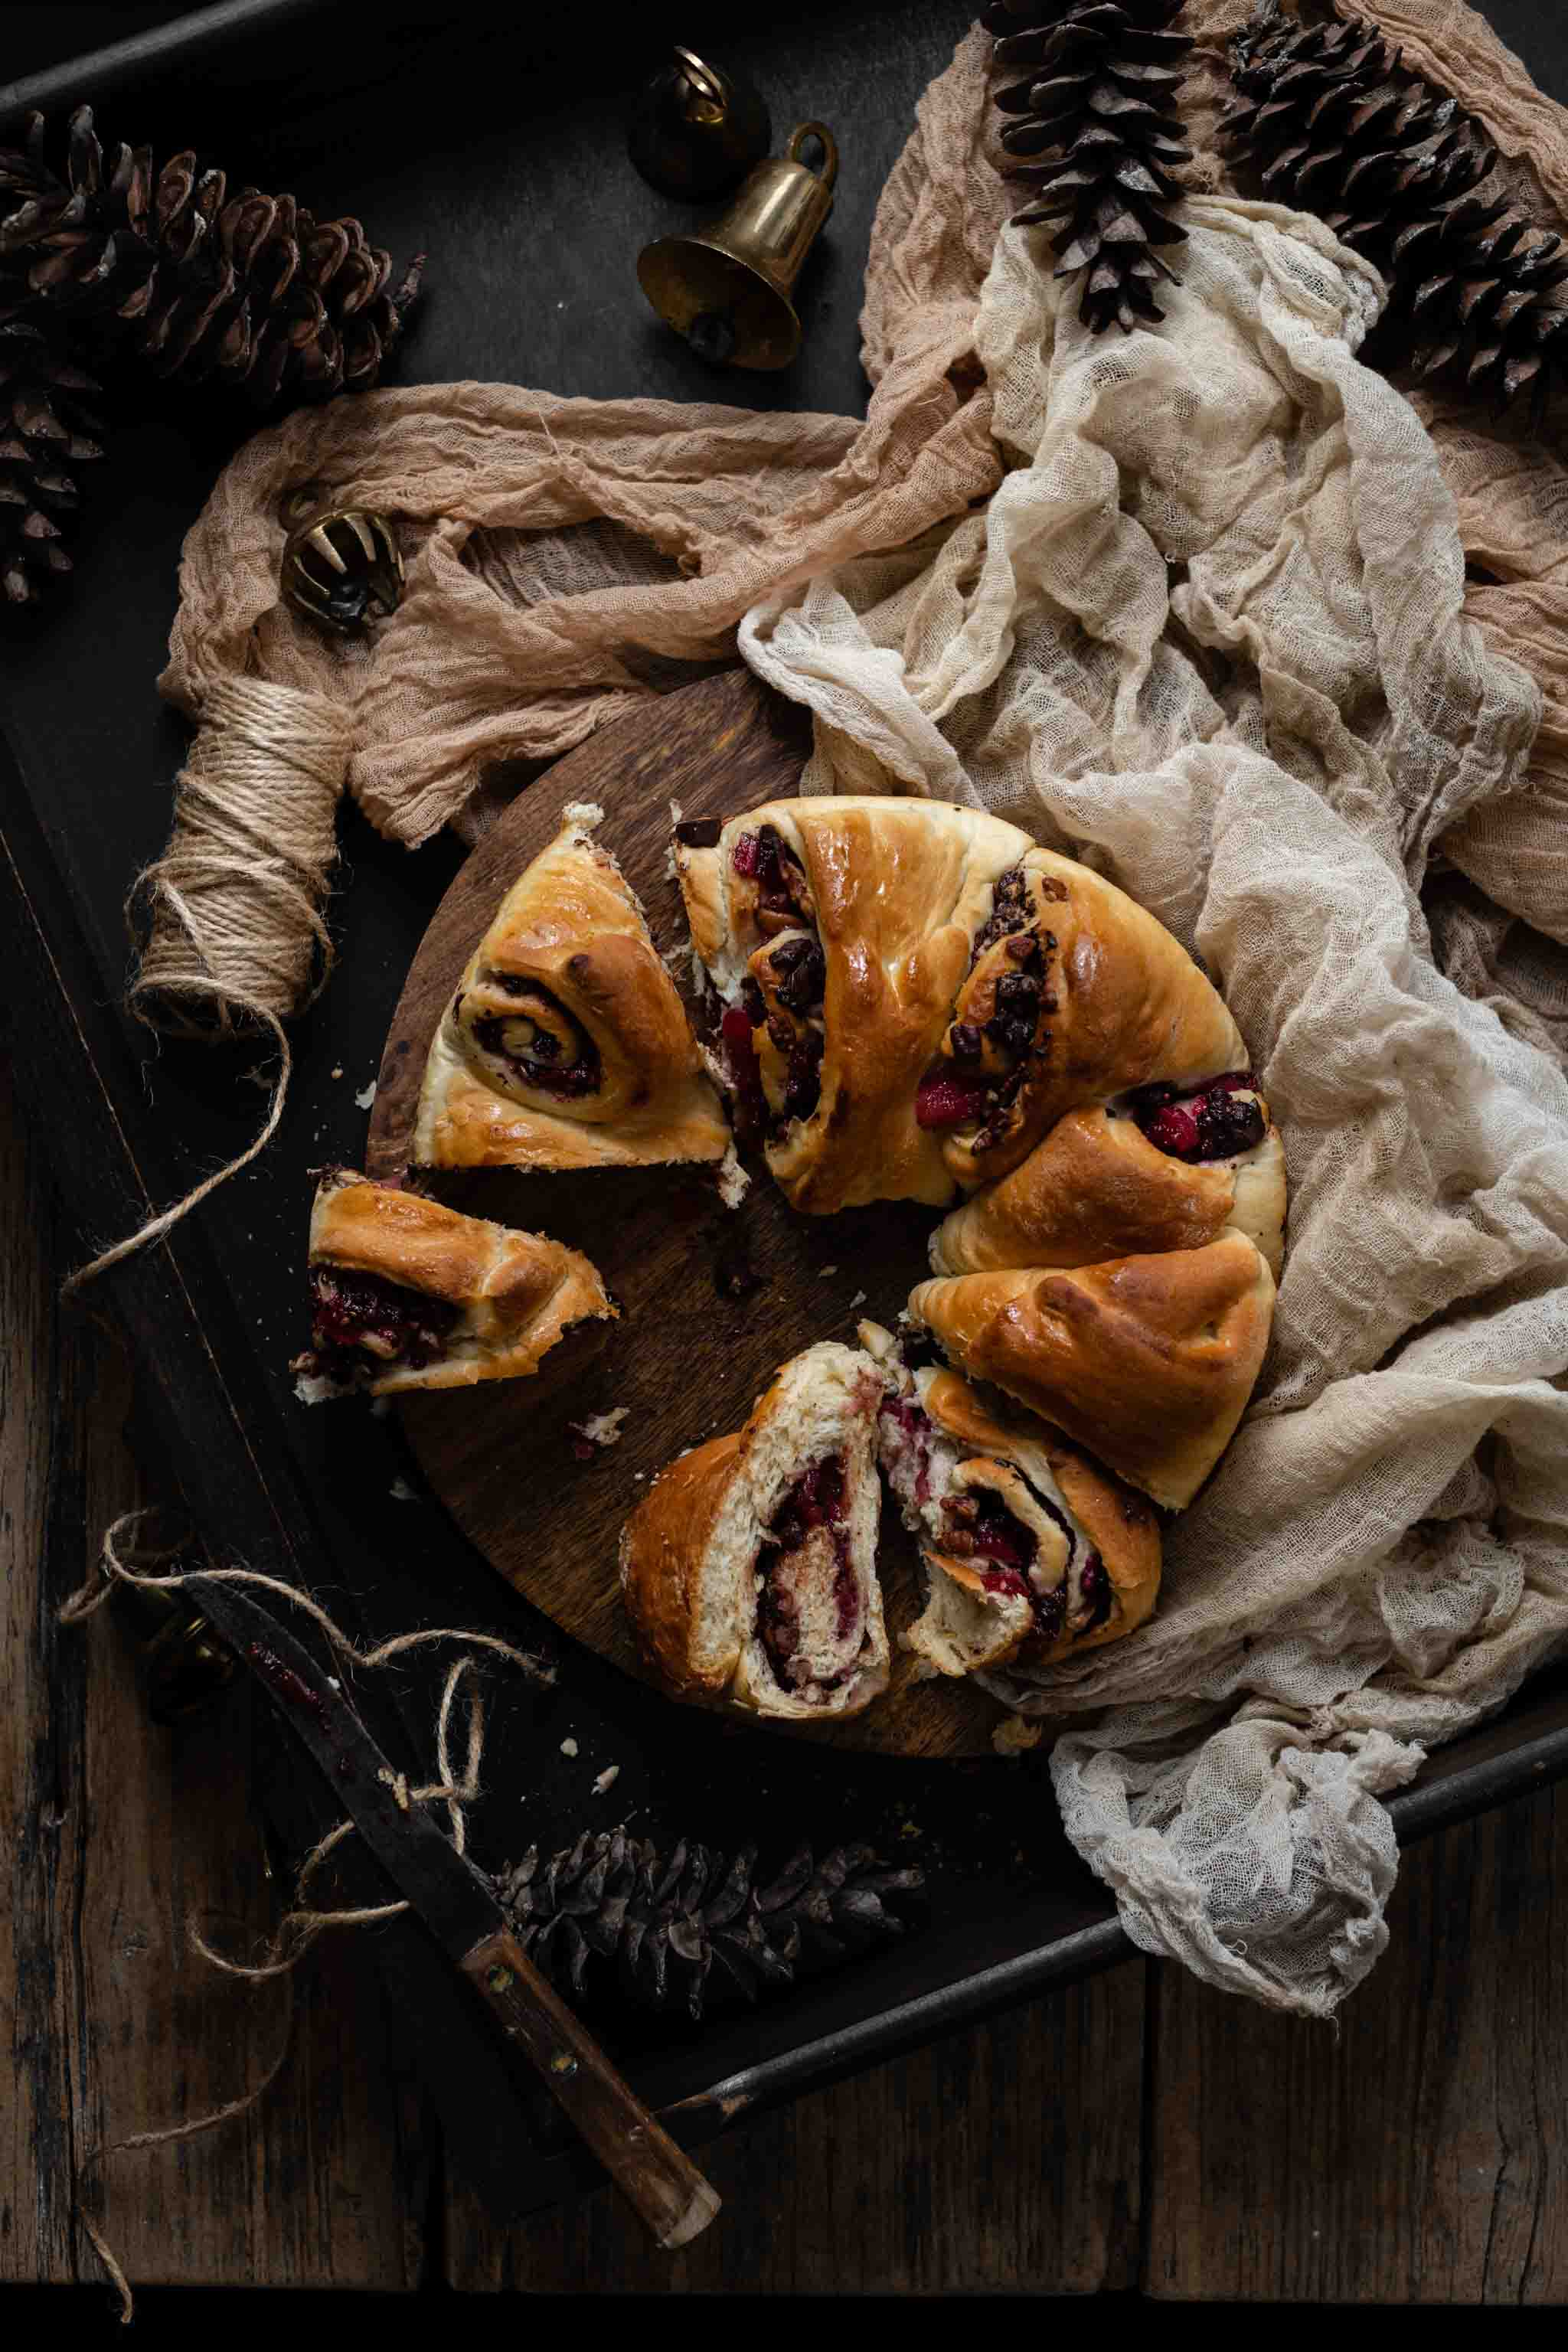 Recipe for Christmas Bread Wreath with fruit filling.